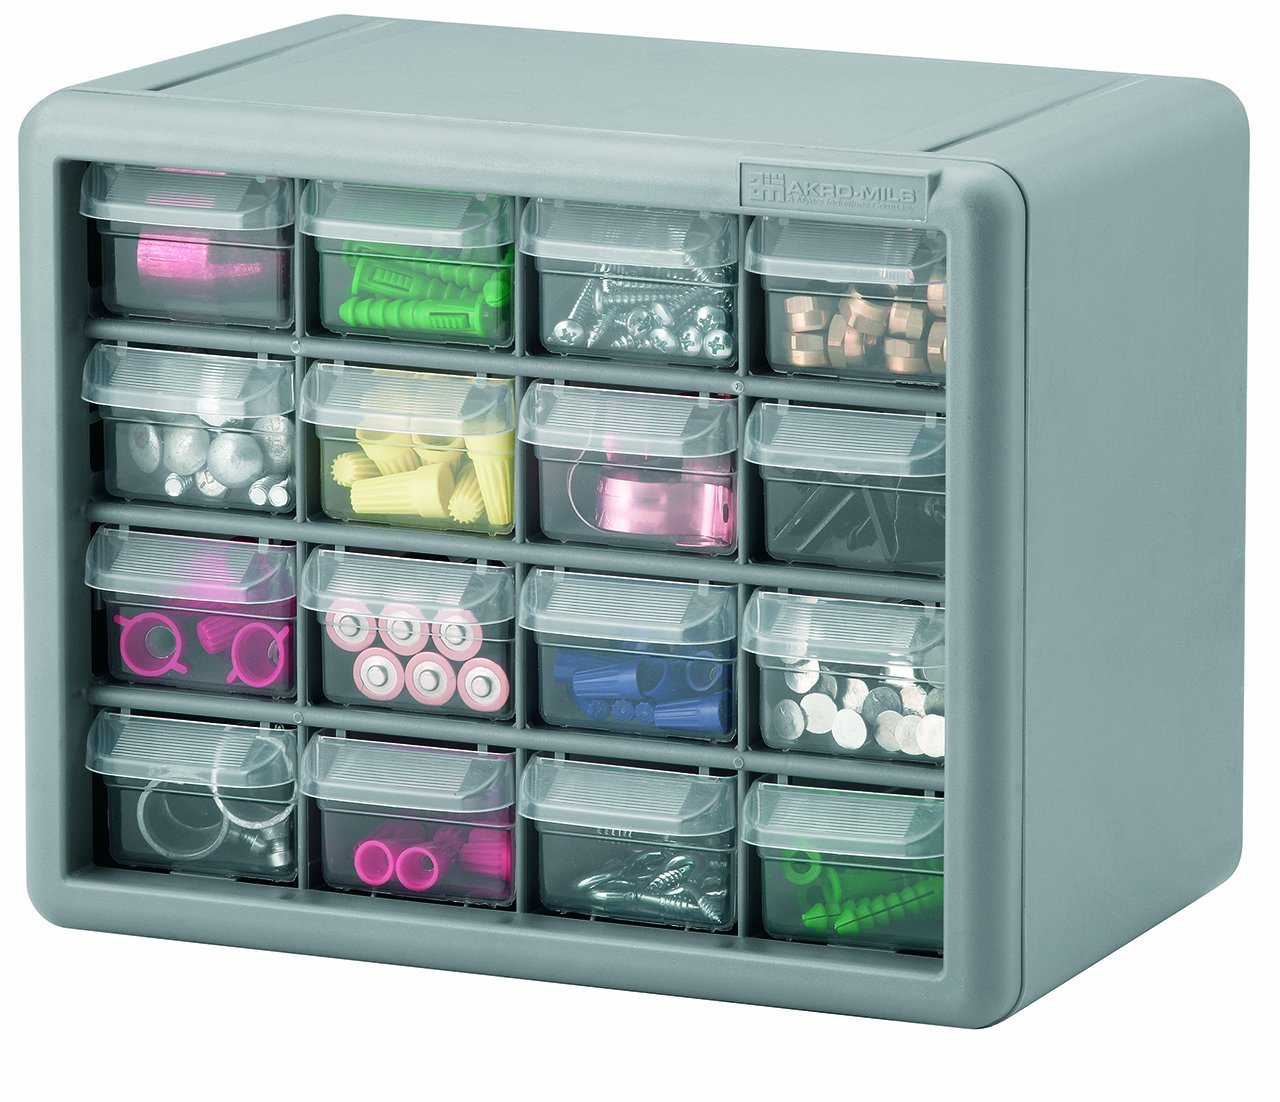 Amazon.com Akro-Mils 10716 16-Drawer Plastic Parts Storage Hardware and Craft Cabinet 10-1/2-Inch by 8-1/2-Inch by 6-3/8-Inch Gray Home Improvement  sc 1 st  Amazon.com & Amazon.com: Akro-Mils 10716 16-Drawer Plastic Parts Storage Hardware ...